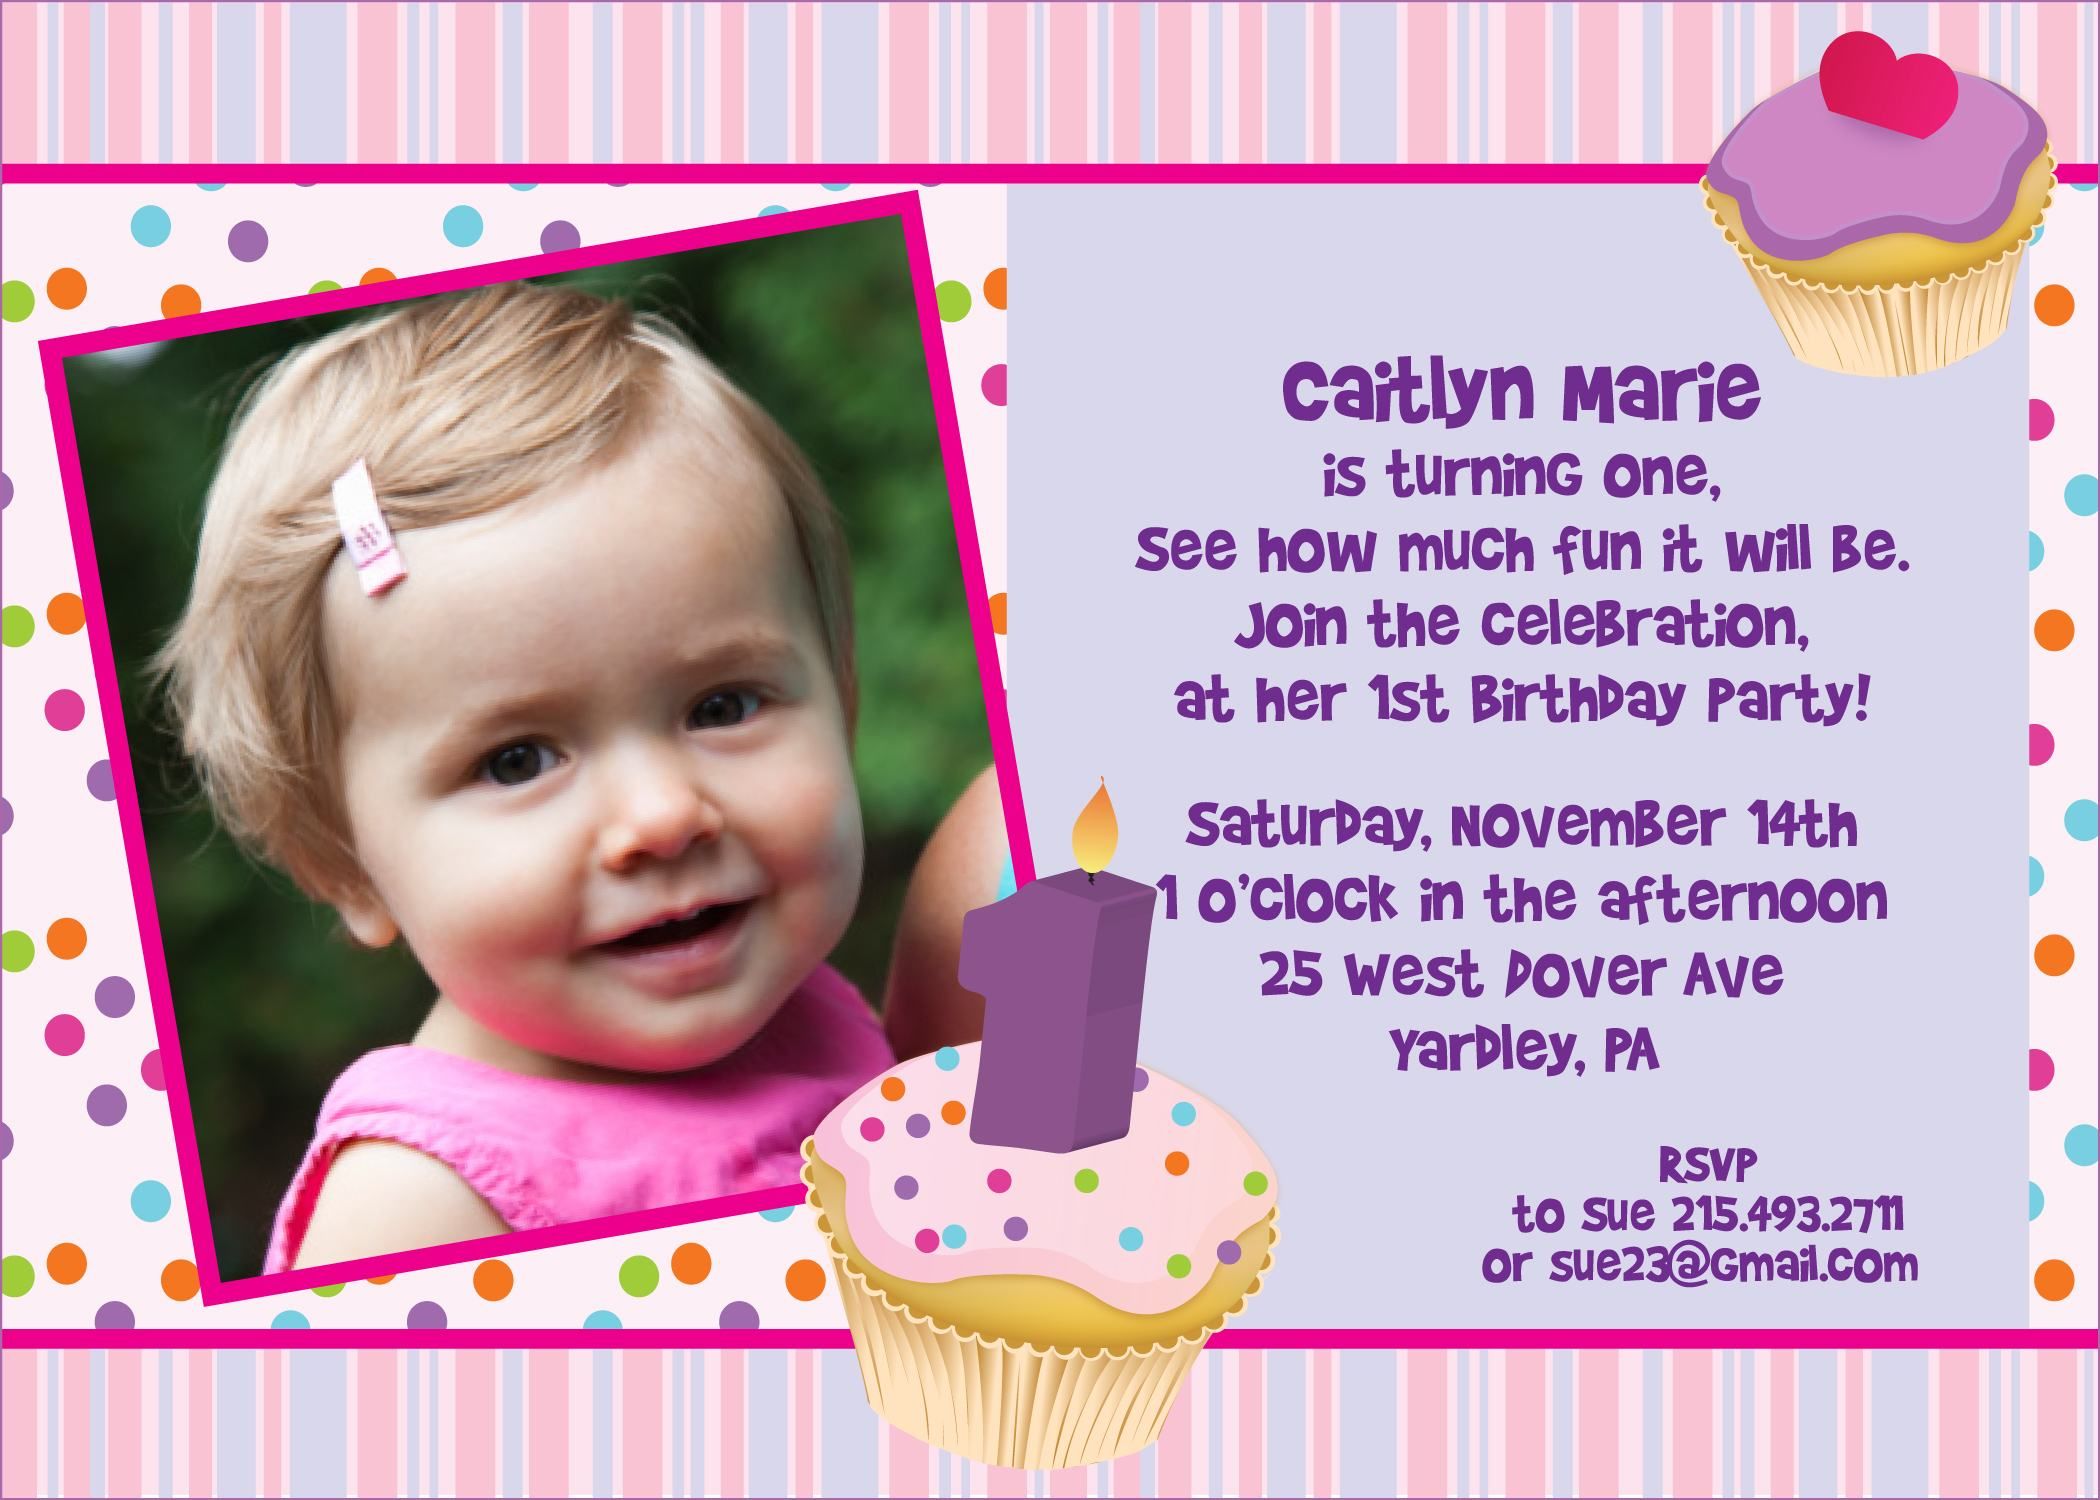 kids birthday party invitation message ; princess-1st-birthday-party-invitations-free-guide-create-easy-kids-birthday-invitation-wording-ideas-of-princess-1st-birthday-party-invitations